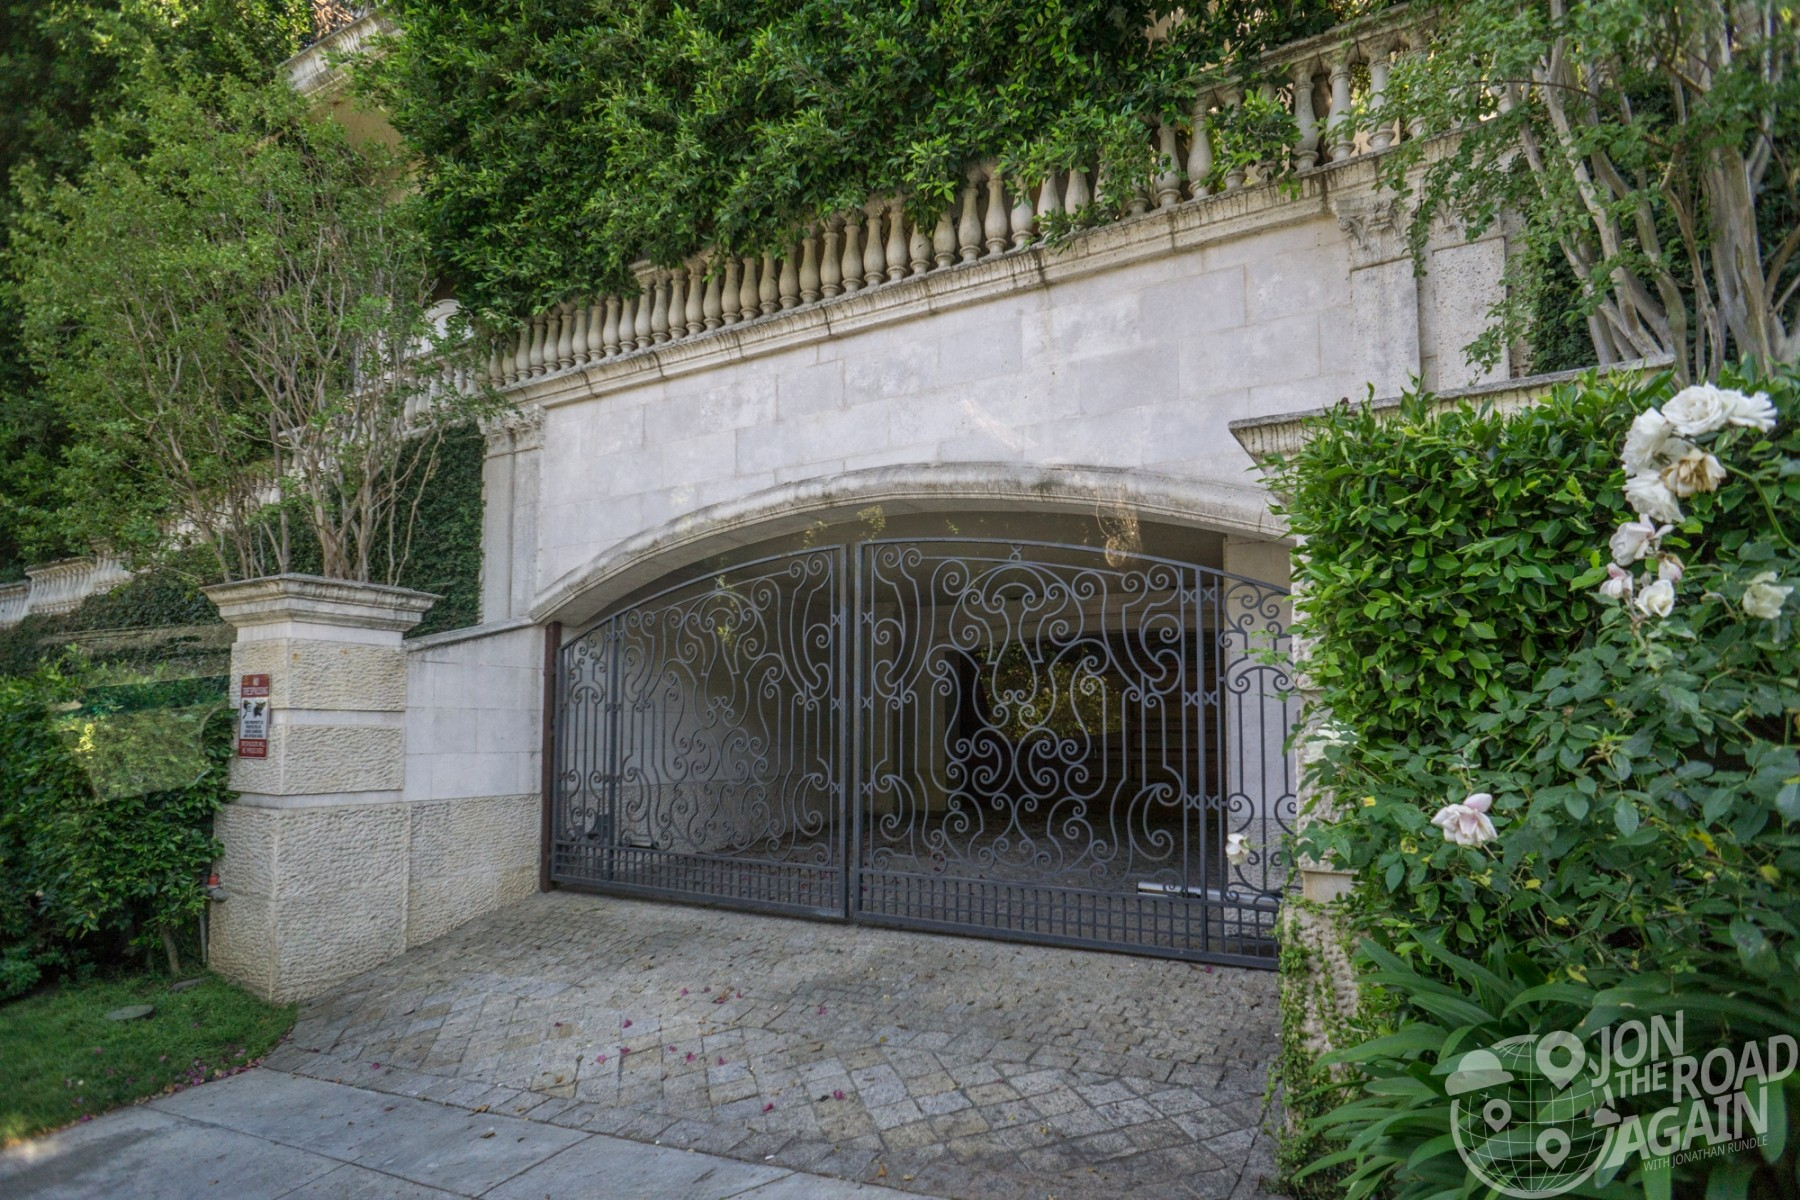 Michael Jackson's home garage entrance